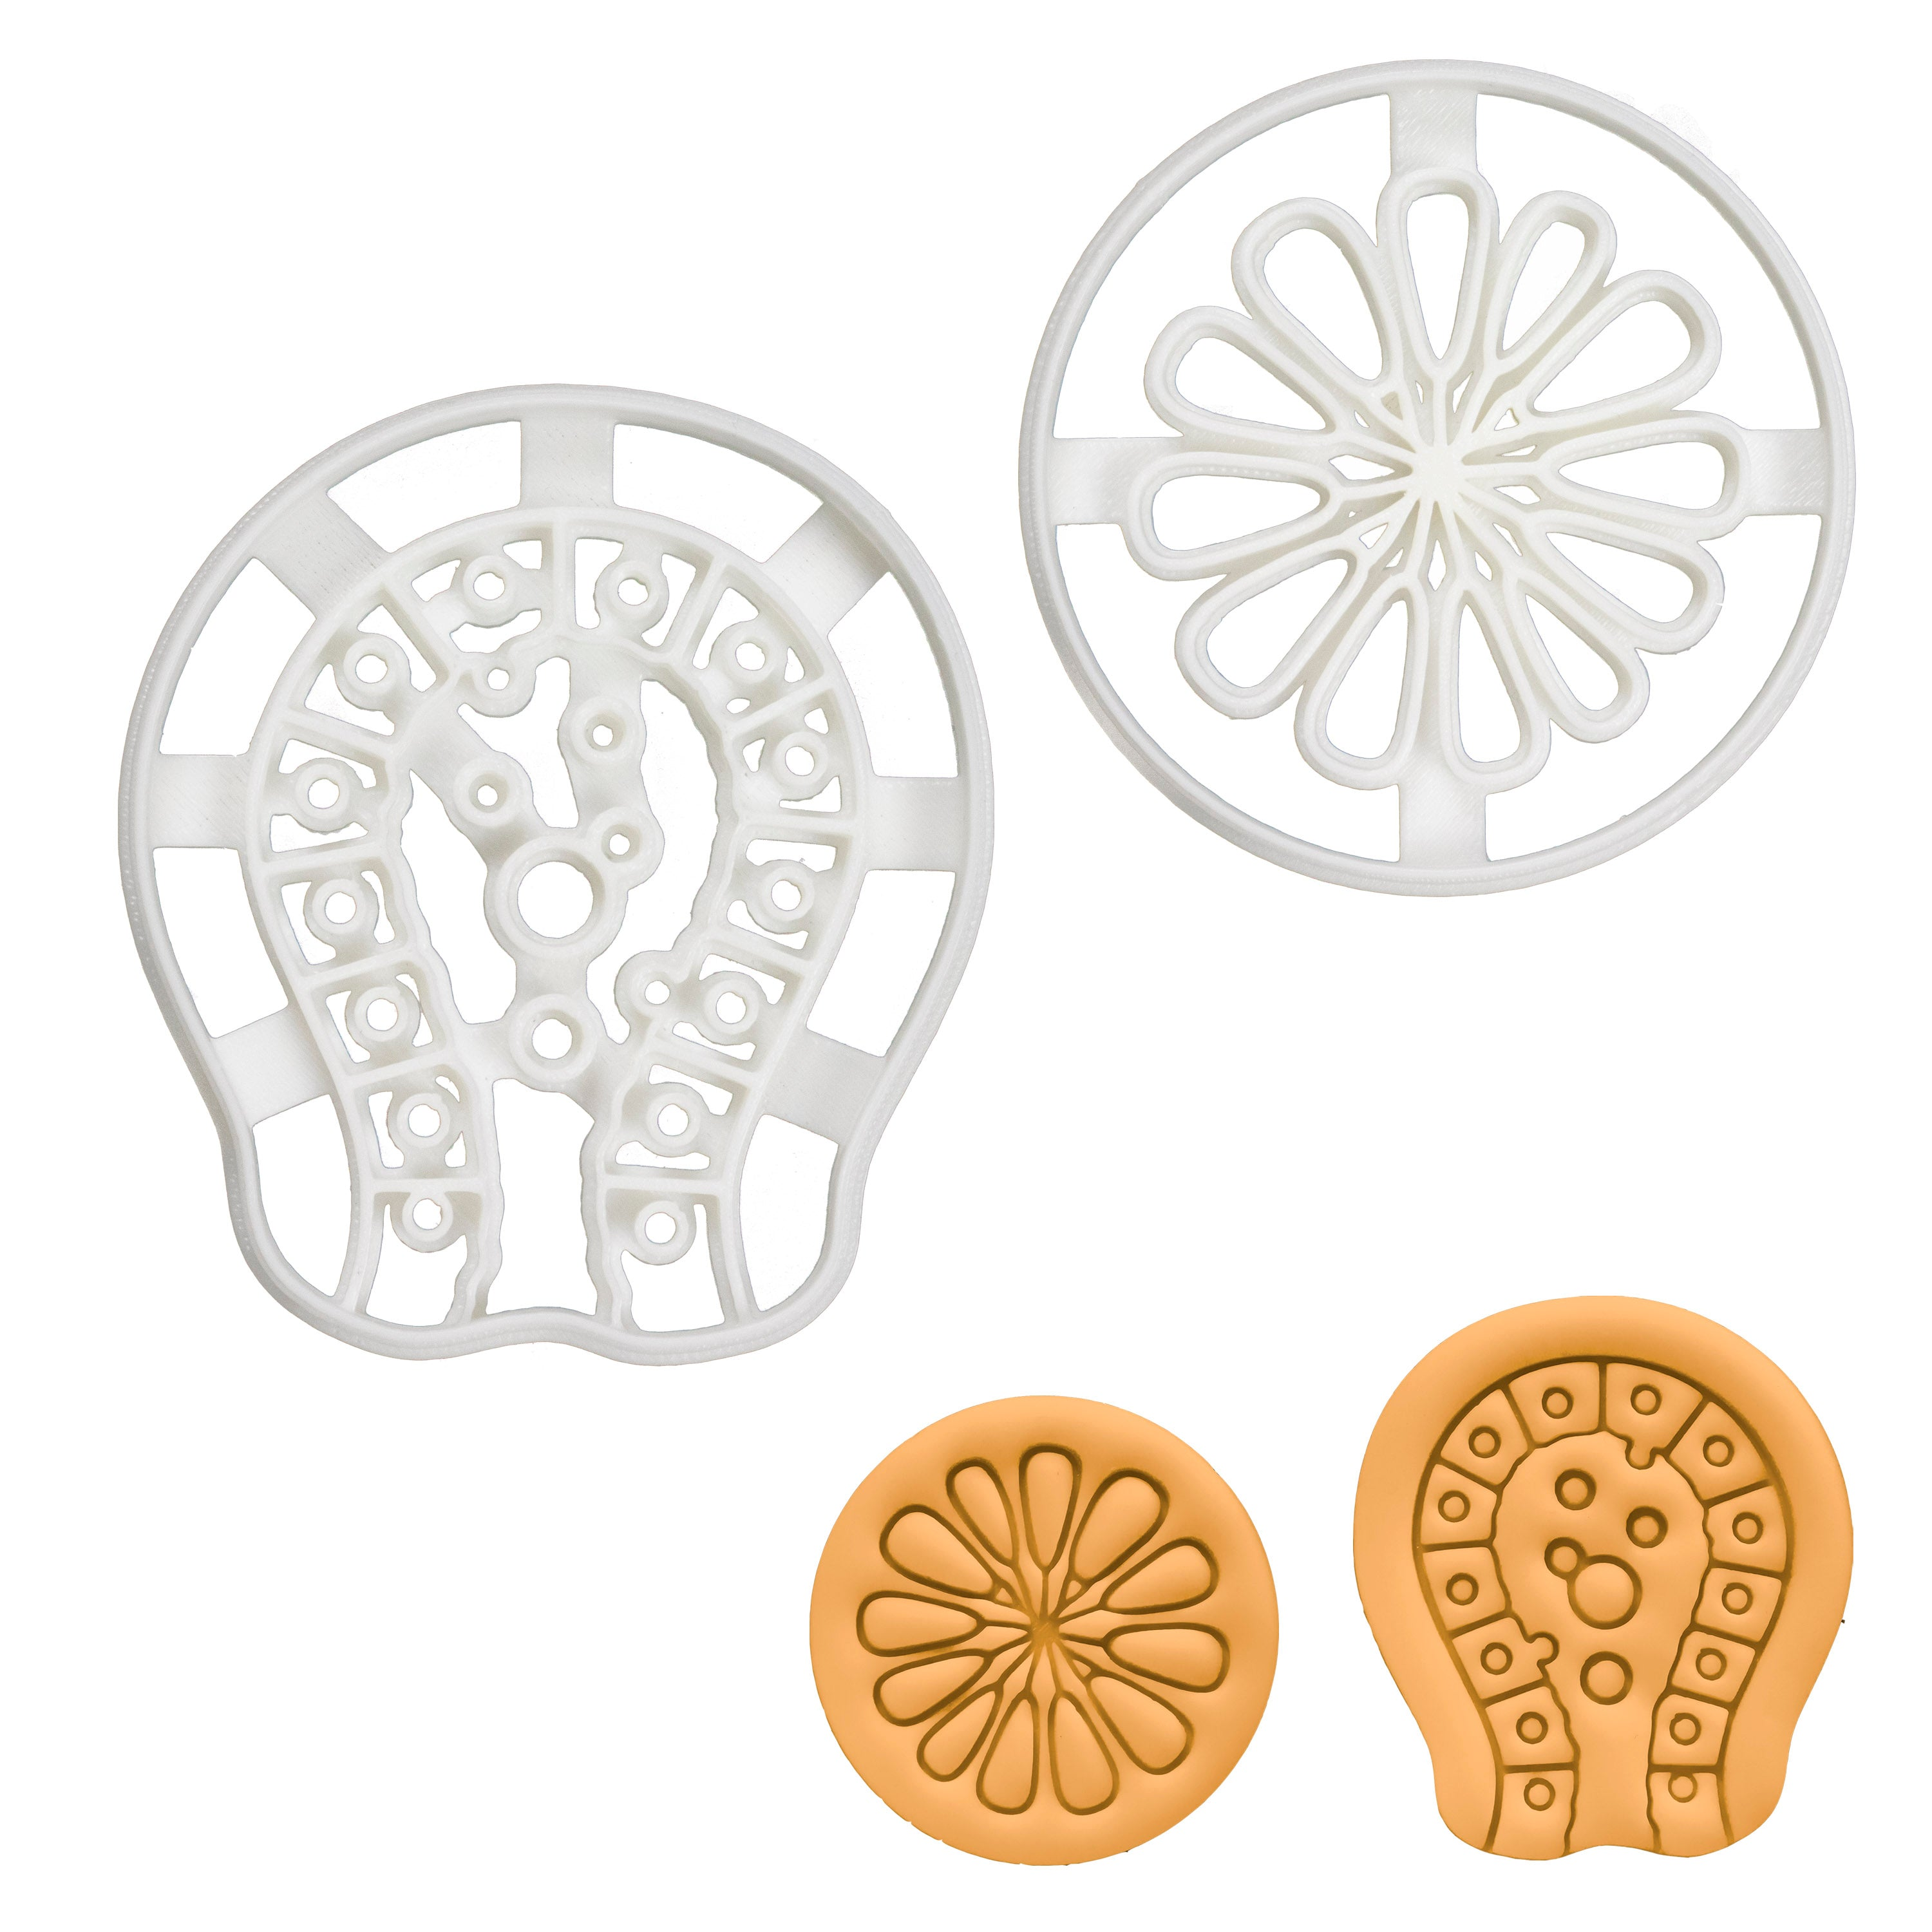 Set of 2 Cookie Cutters: Milk Ducts & Mammary Alveoli Glands